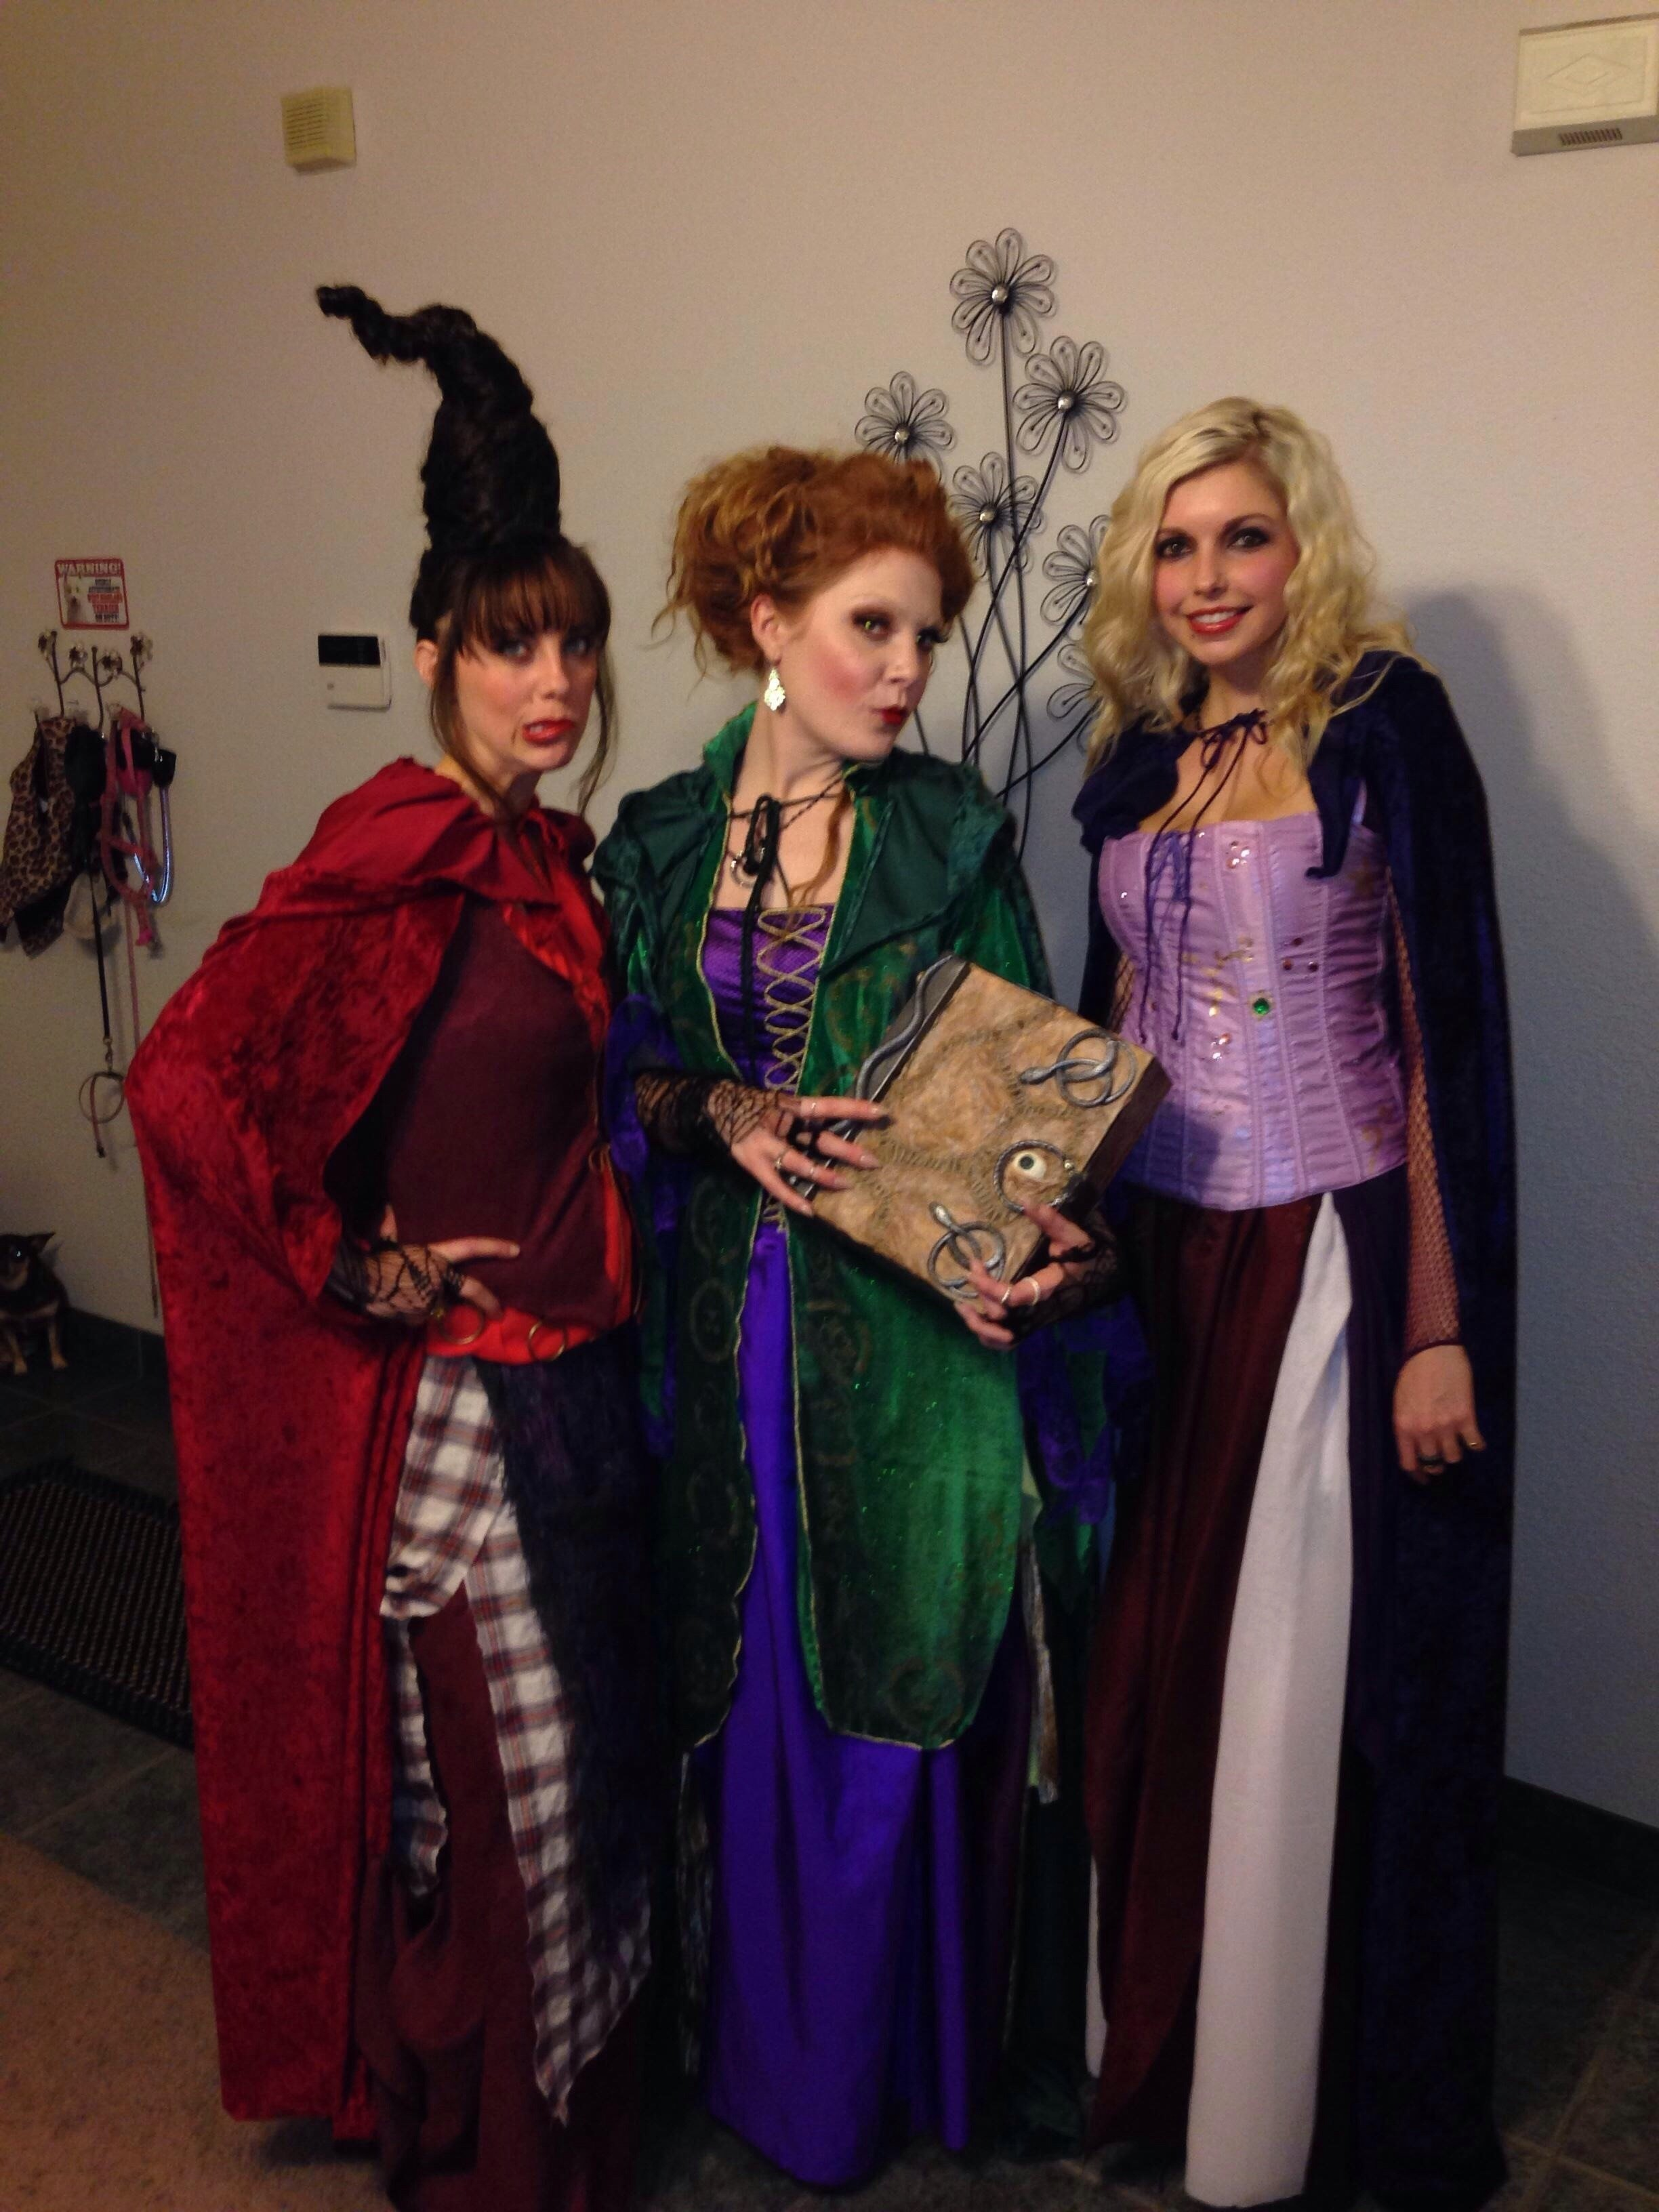 10 Fantastic Halloween Costume Ideas For Three People 35 fun group halloween costumes for you and your friends sanderson 5 2021